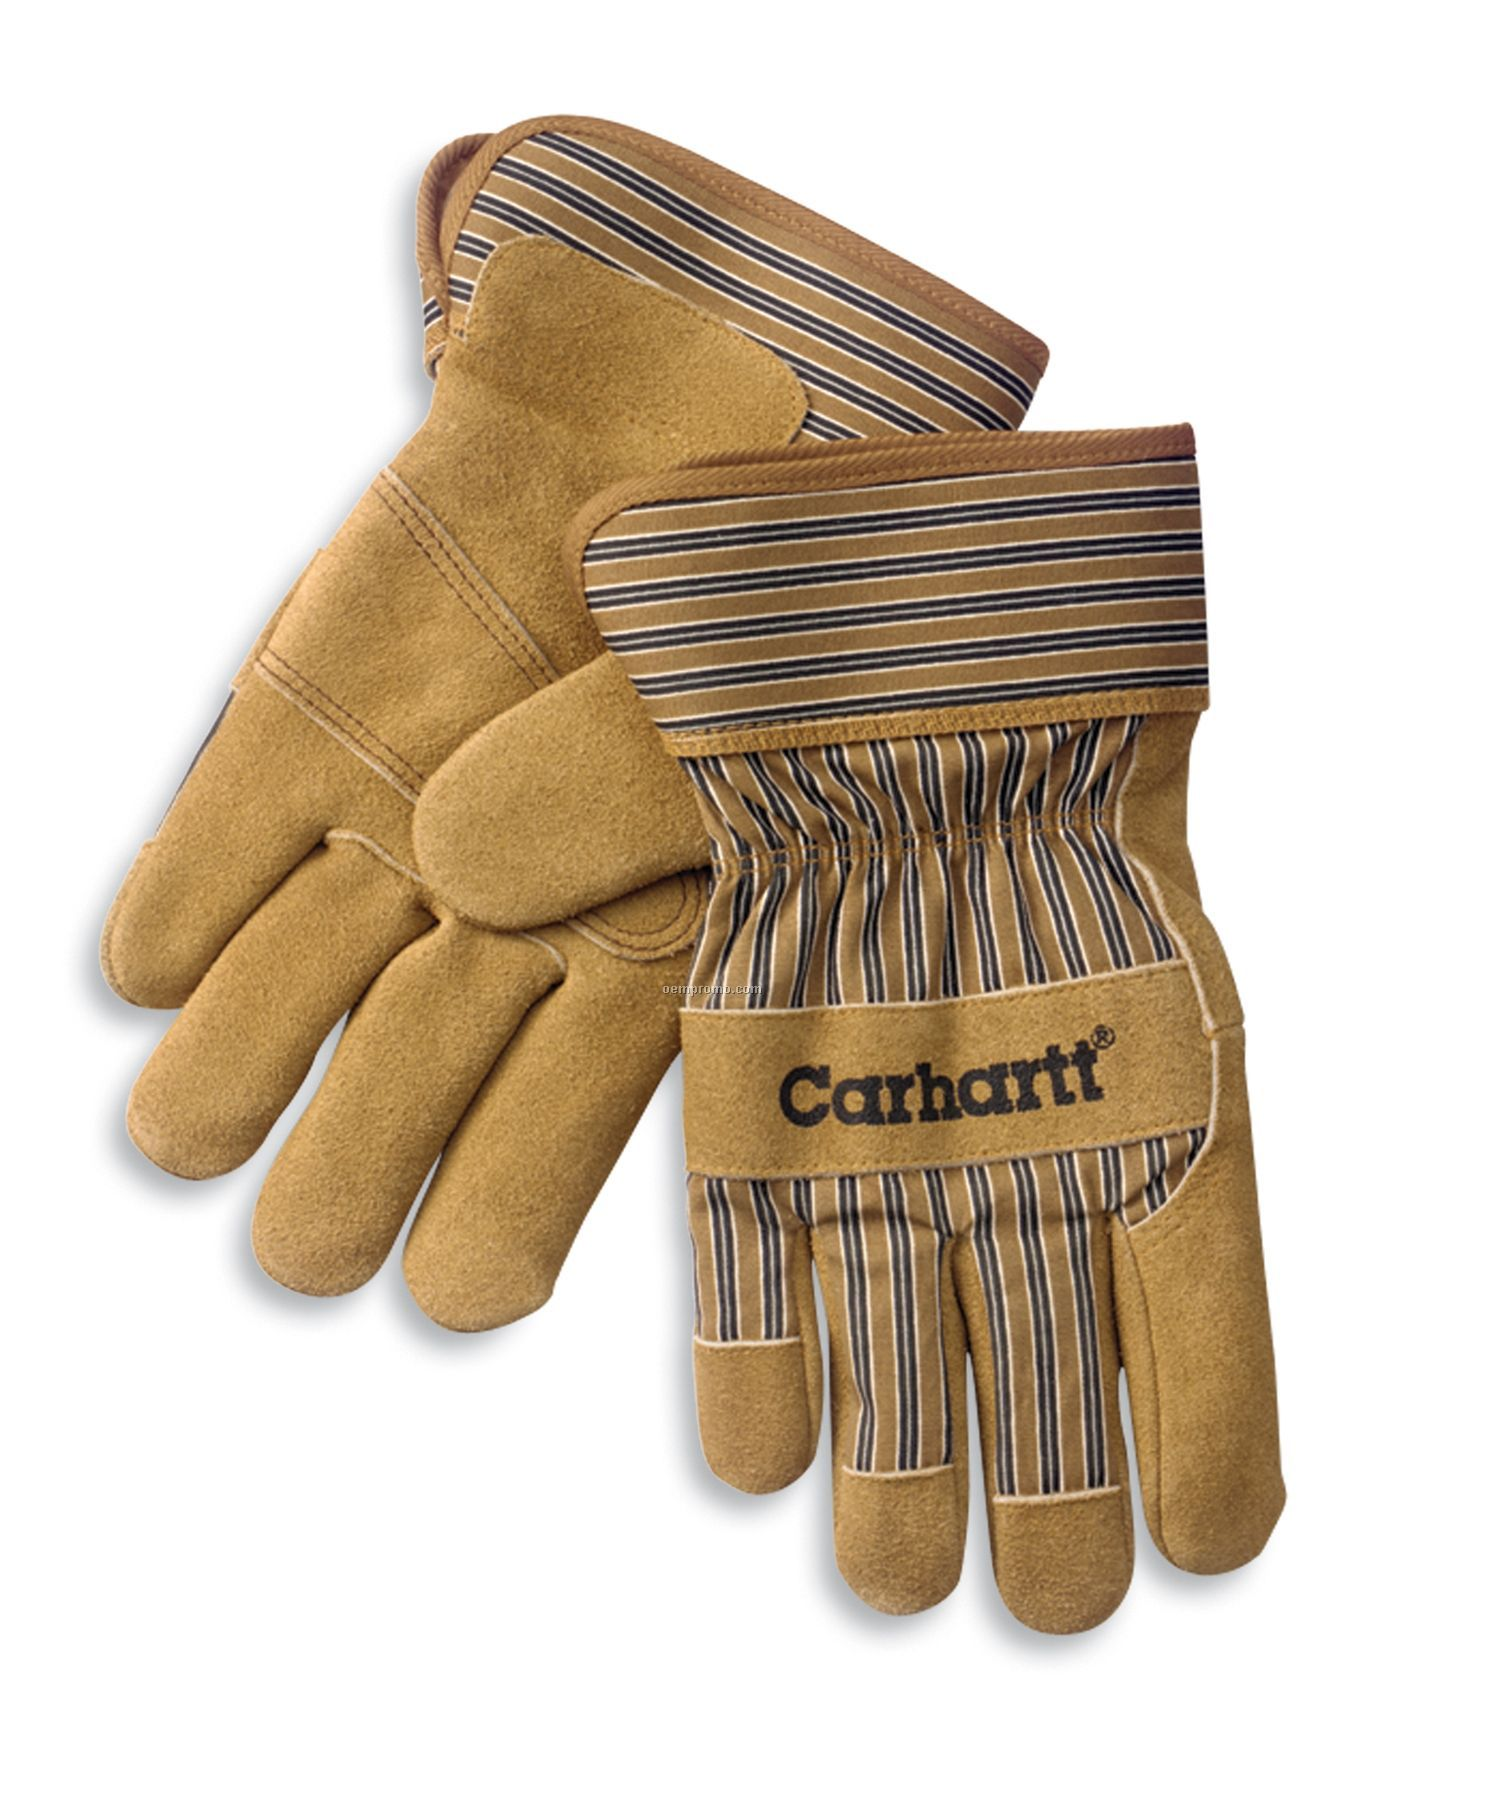 Carhartt Men's Insulated Leather Palm Gloves/ Suede Cowhide